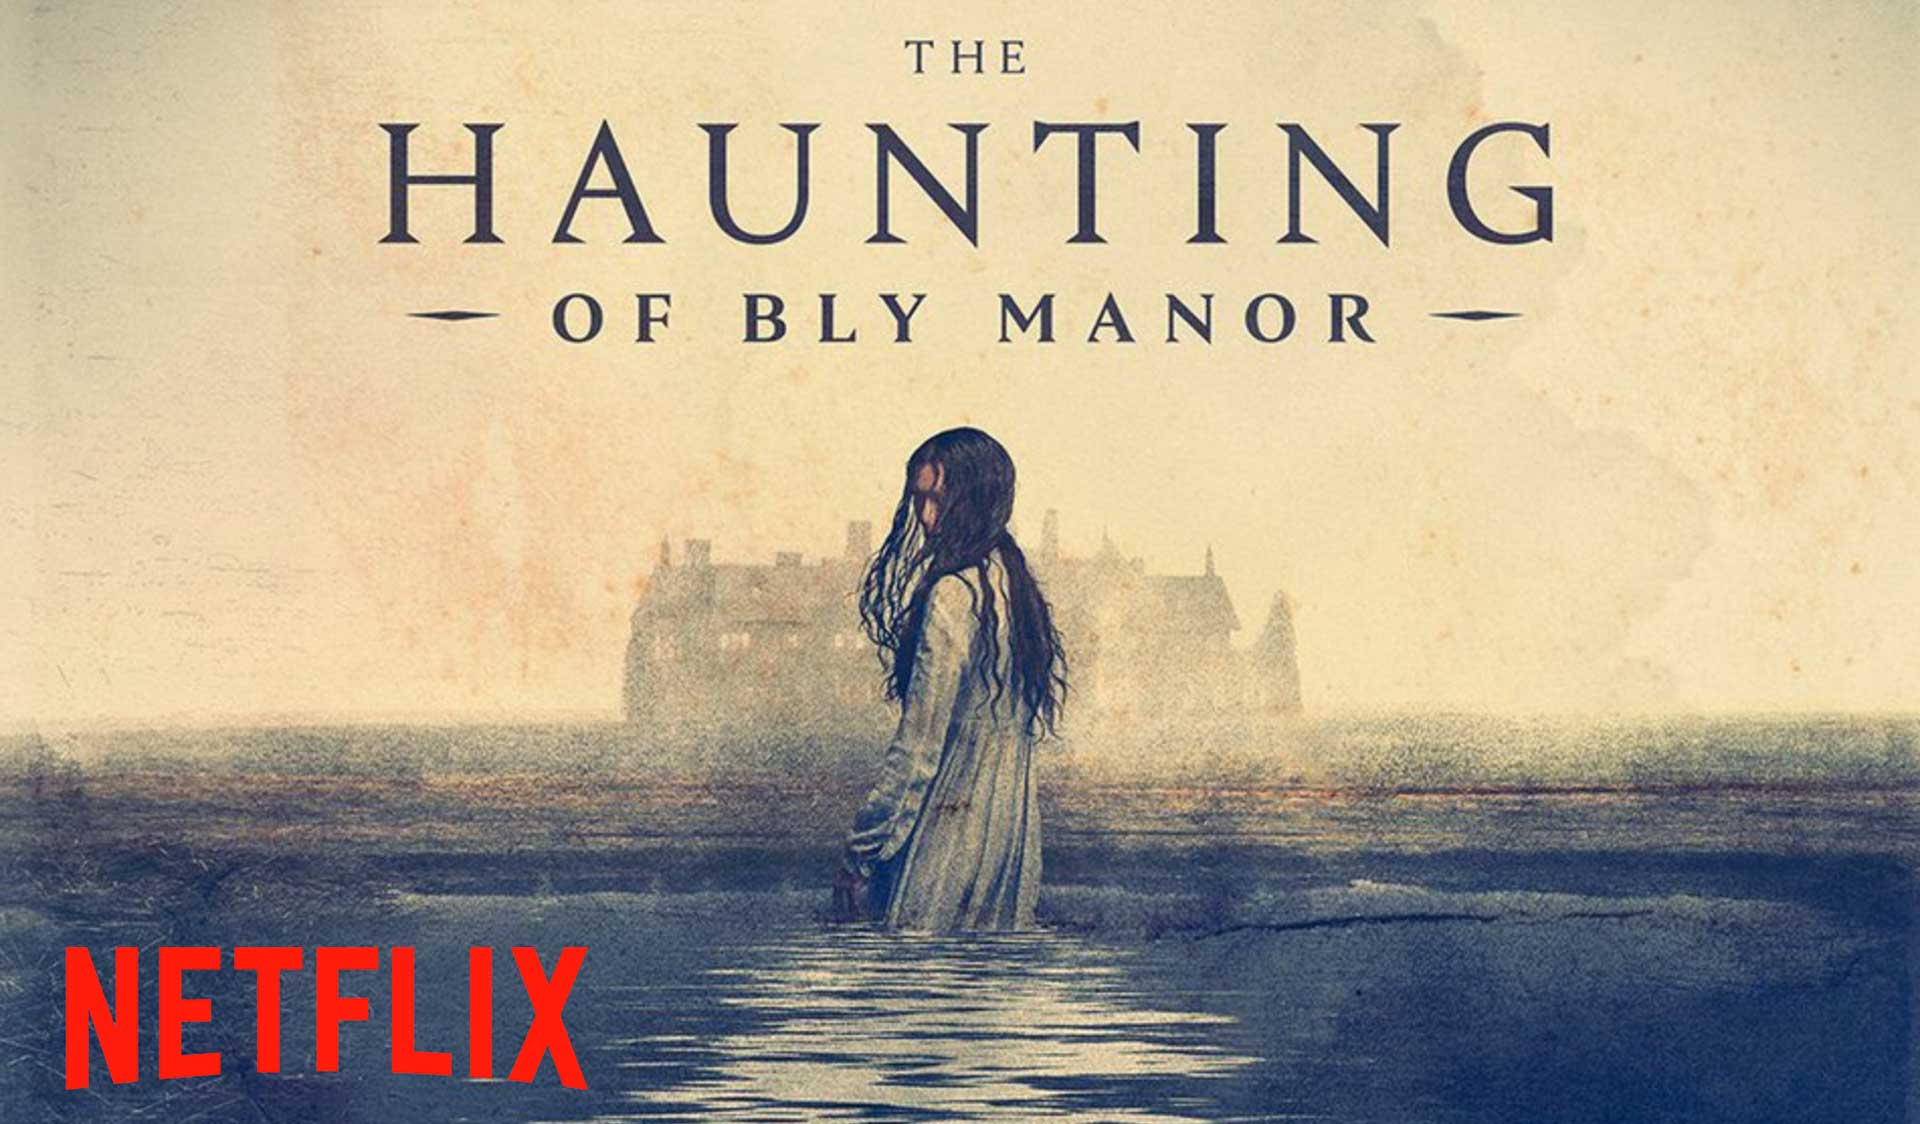 Netflix October The Haunting of Bly Manor